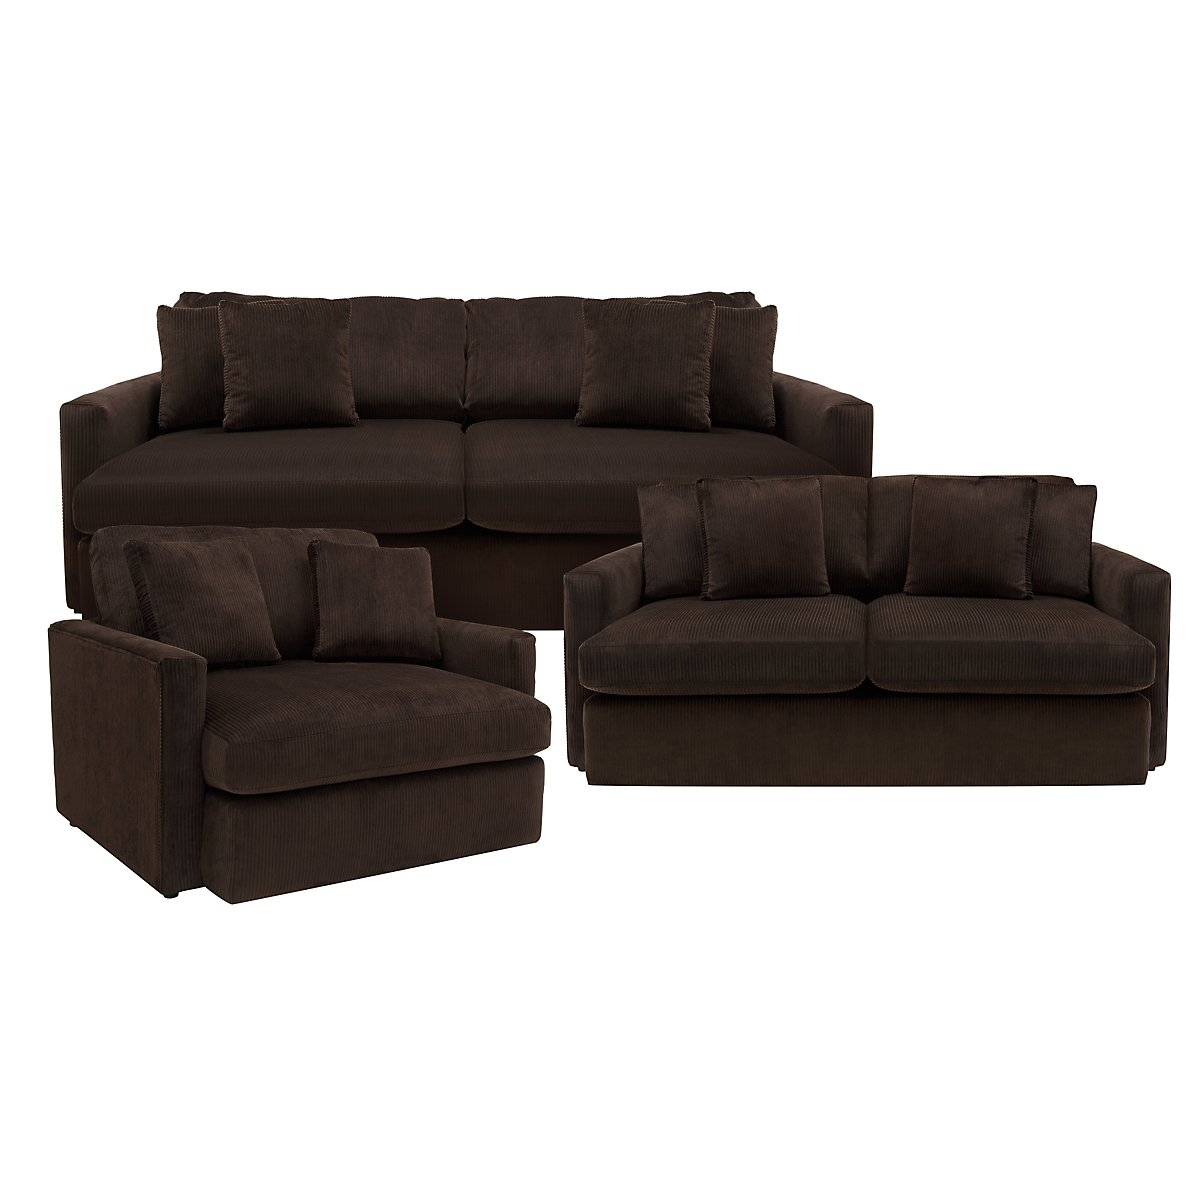 Dark brown microfiber sofa glasgow dark brown elephant for Divan and settee